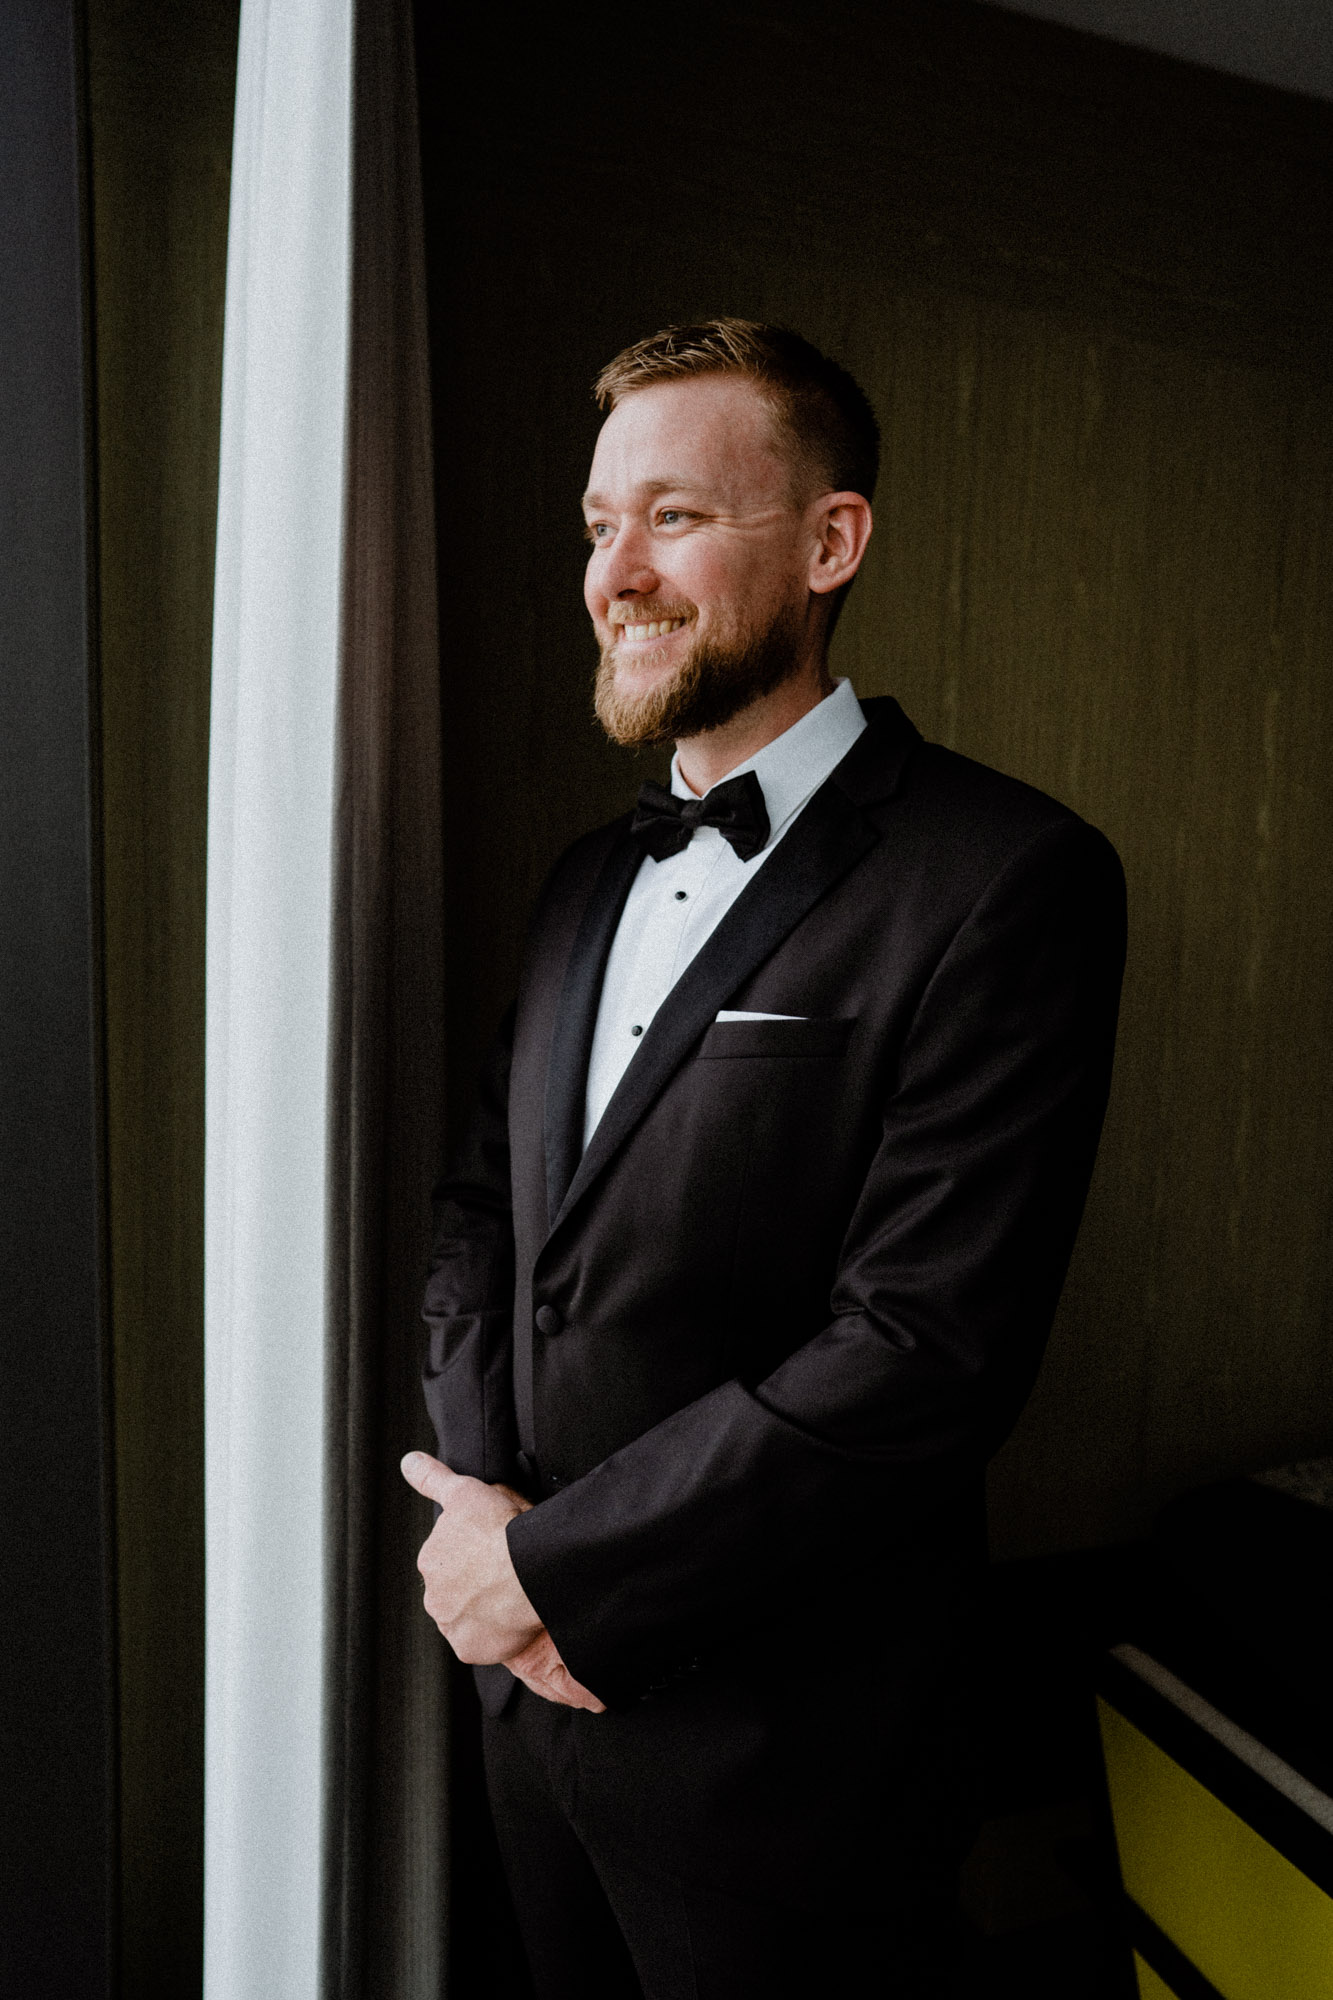 shannon-liam-westin-wedding-perth-10.jpg